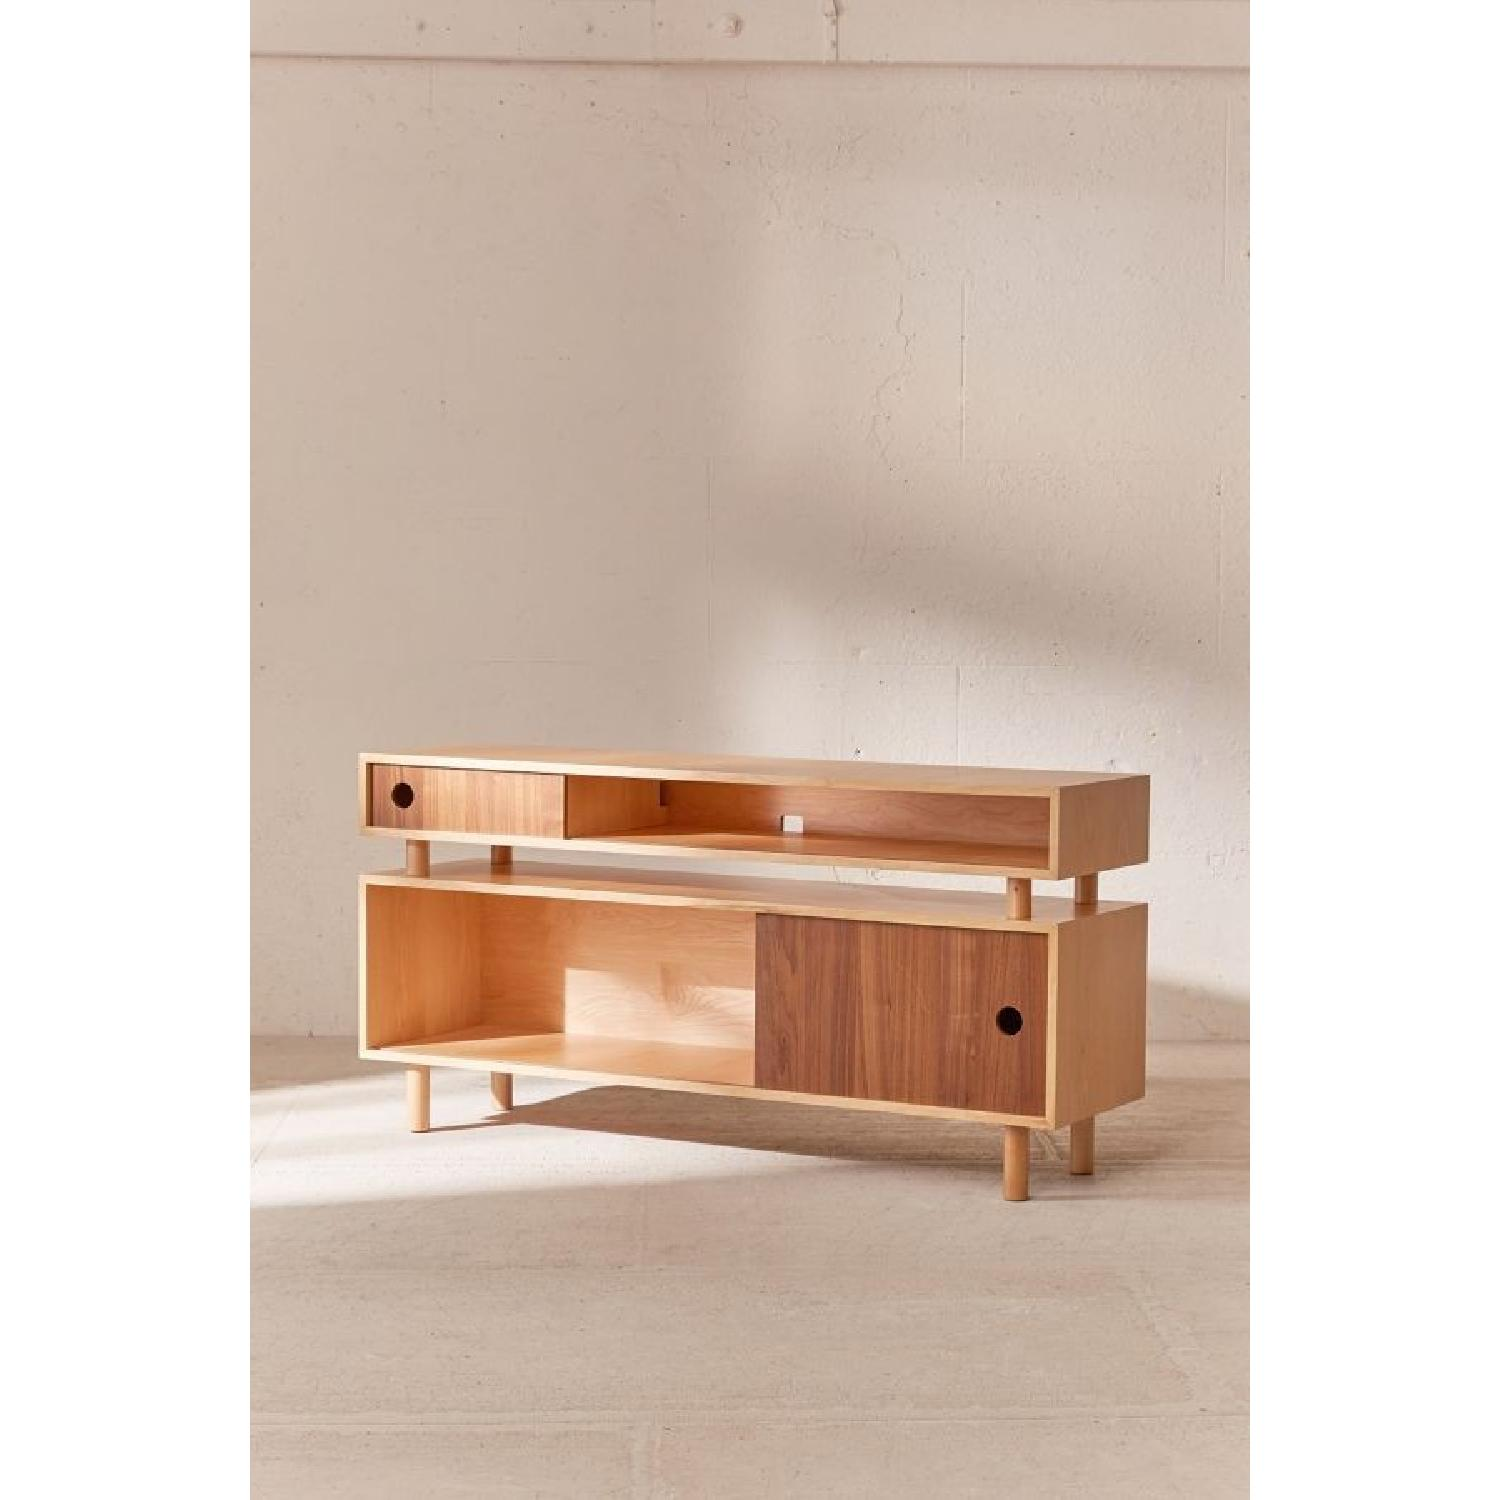 Urban Outfitters Hamilton Wood Media Console - image-8